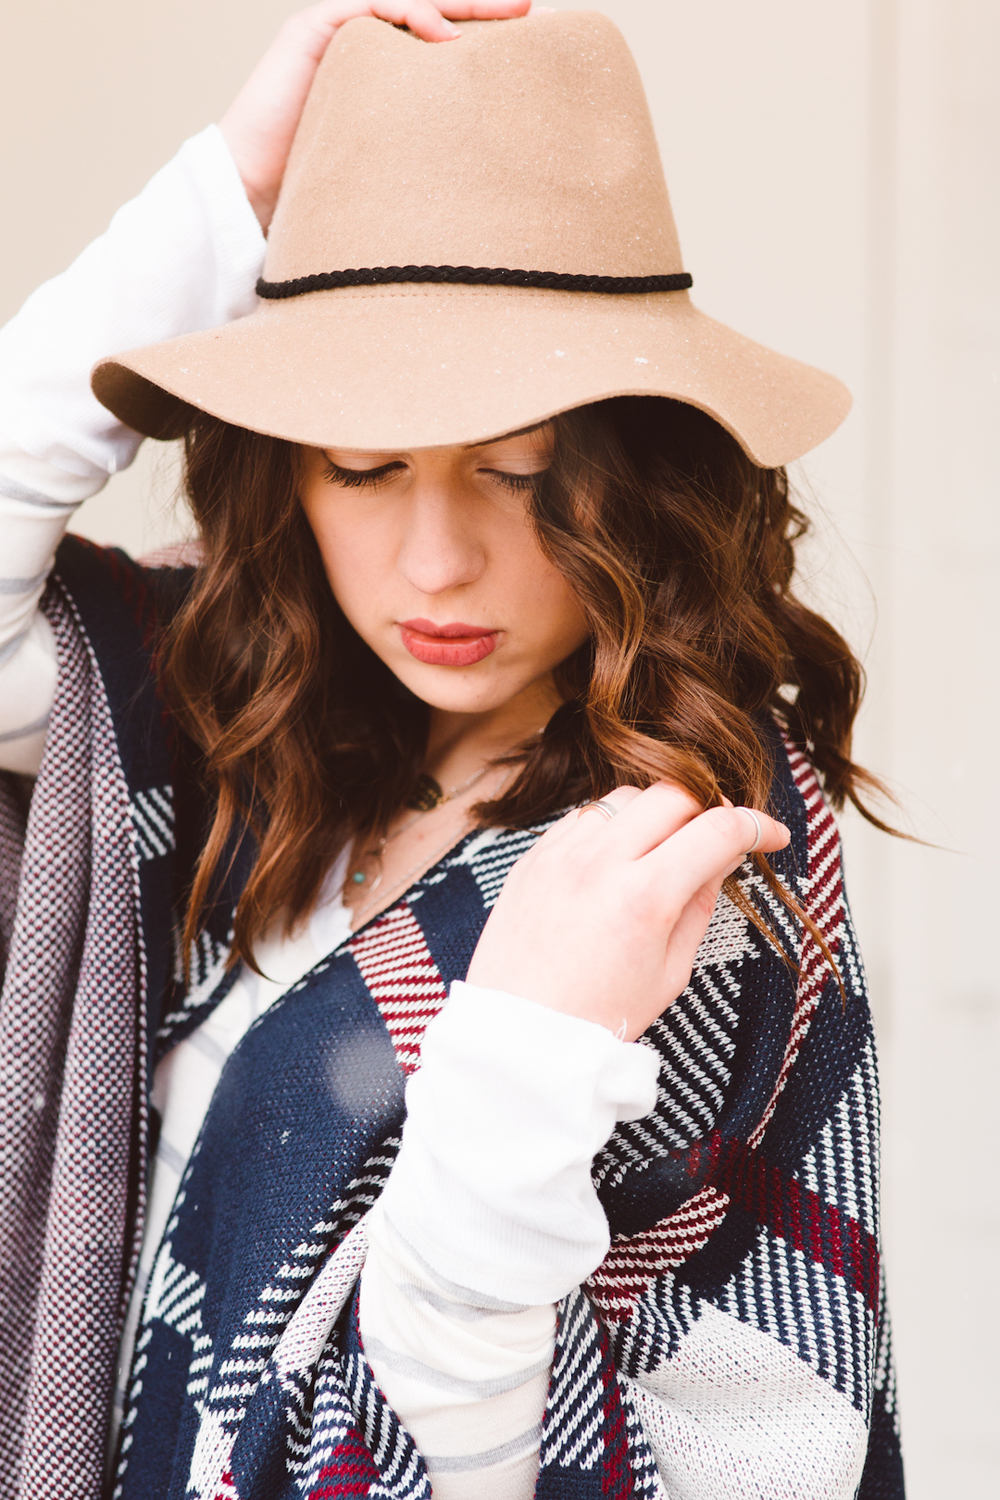 snowy-winter-look-book-the-boutique-at-body-wellness-boho-fashion-maryland-brooke-michelle-photography-81.jpg